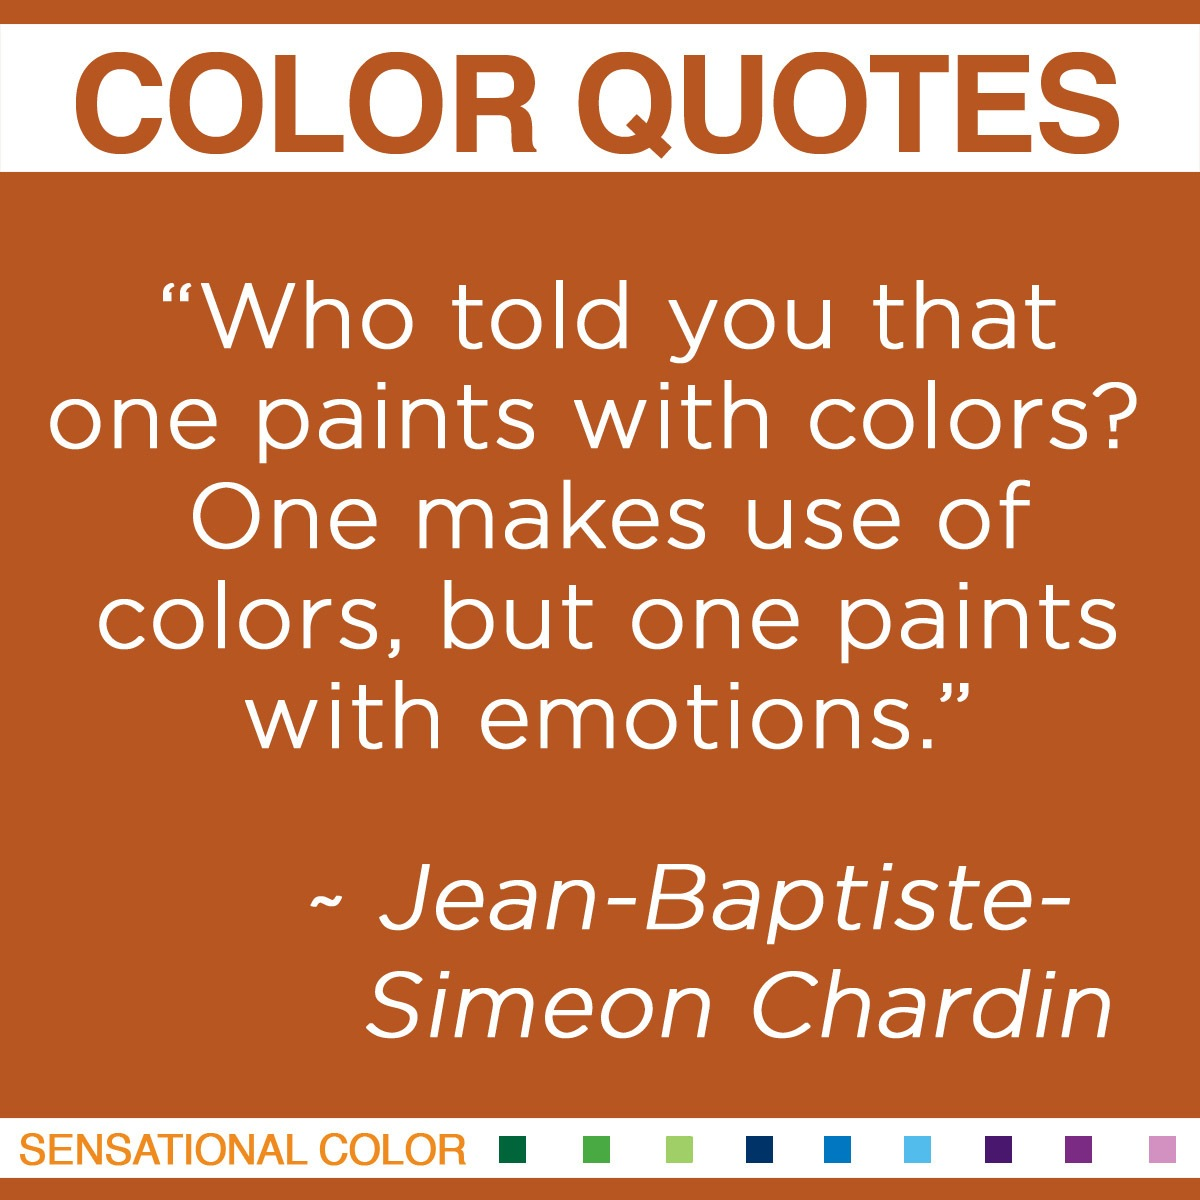 """Who told you that one paints with colors? One makes use of colors, but one paints with emotions."" - Jean-Baptiste-Simeon Chardin"